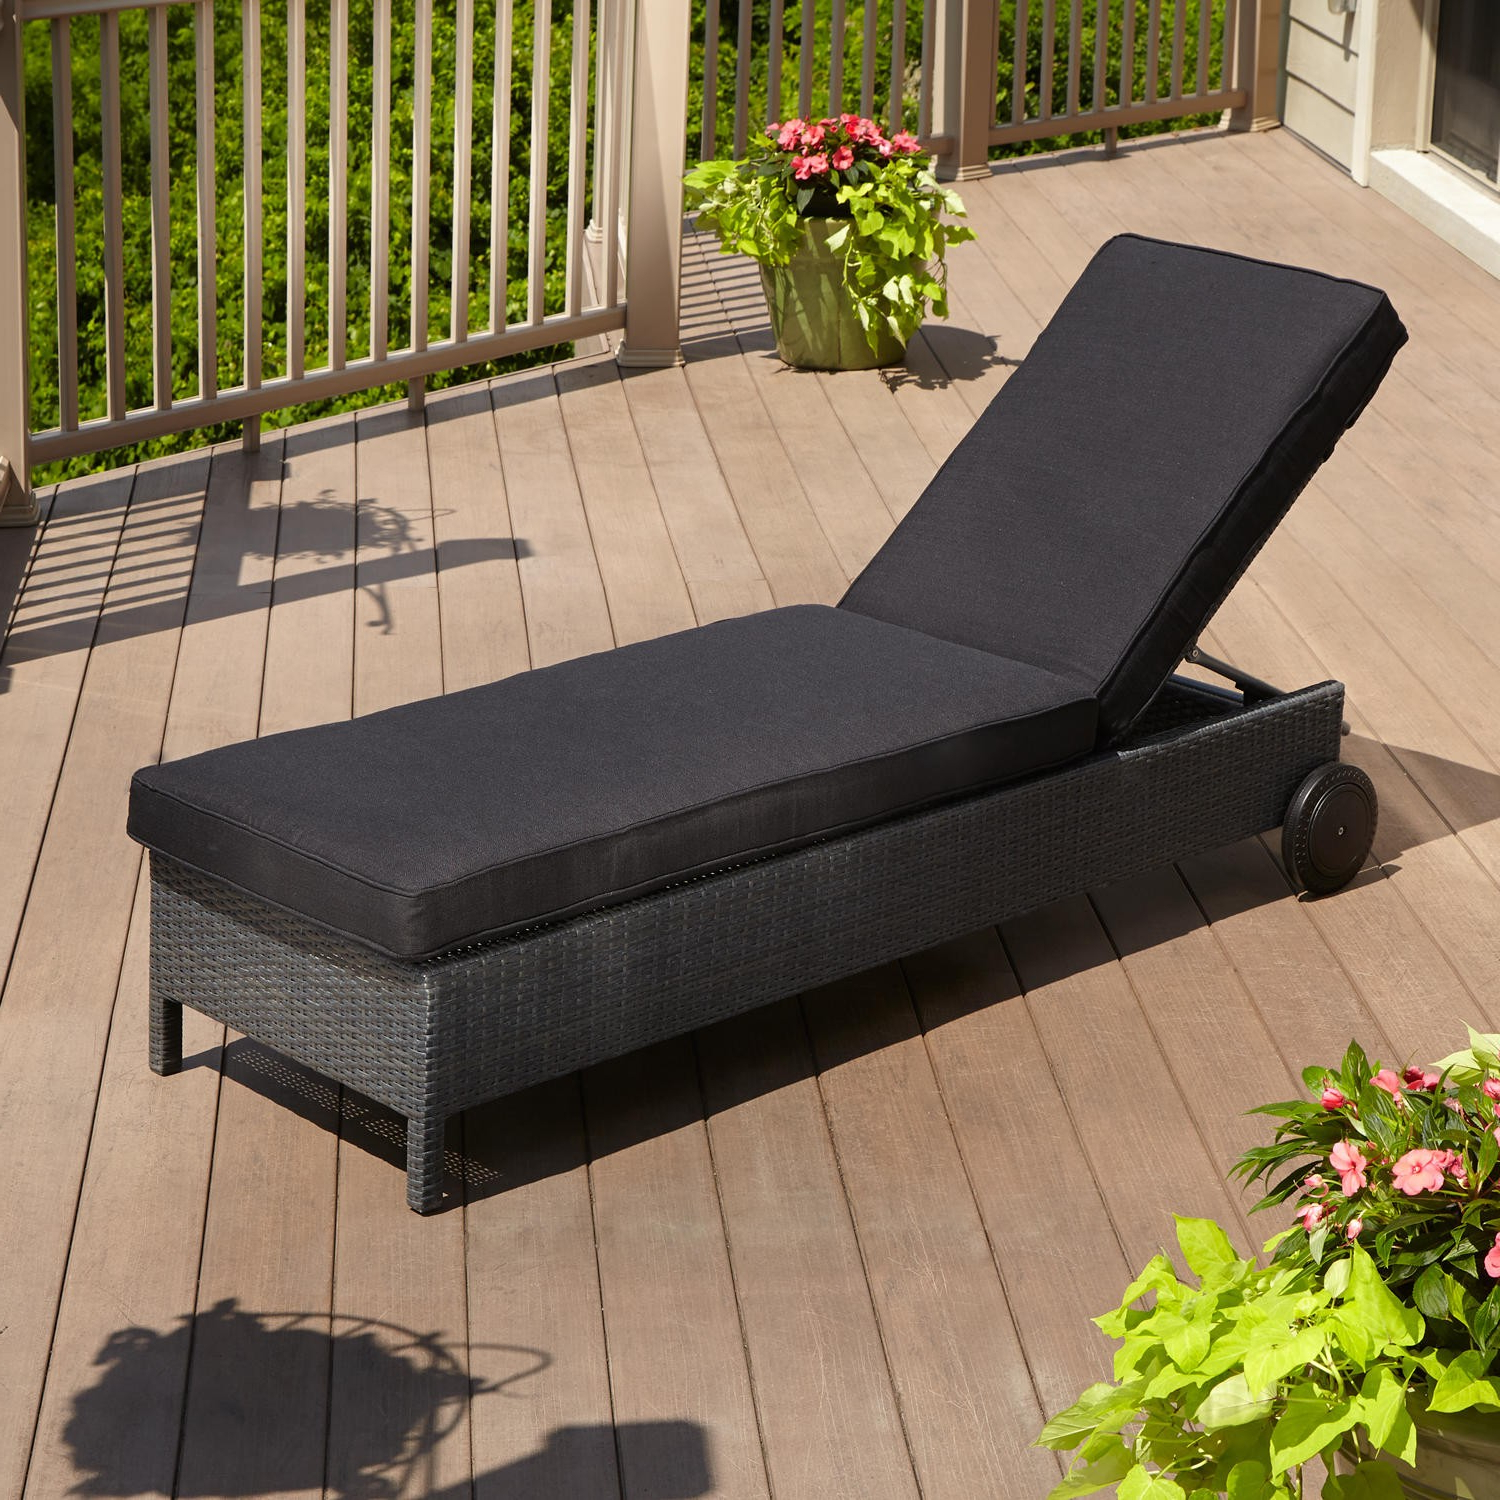 Current All Weather Rattan Wicker Chaise Lounges For Outdoor Patio Chaise Lounge – Patio Ideas (View 12 of 25)